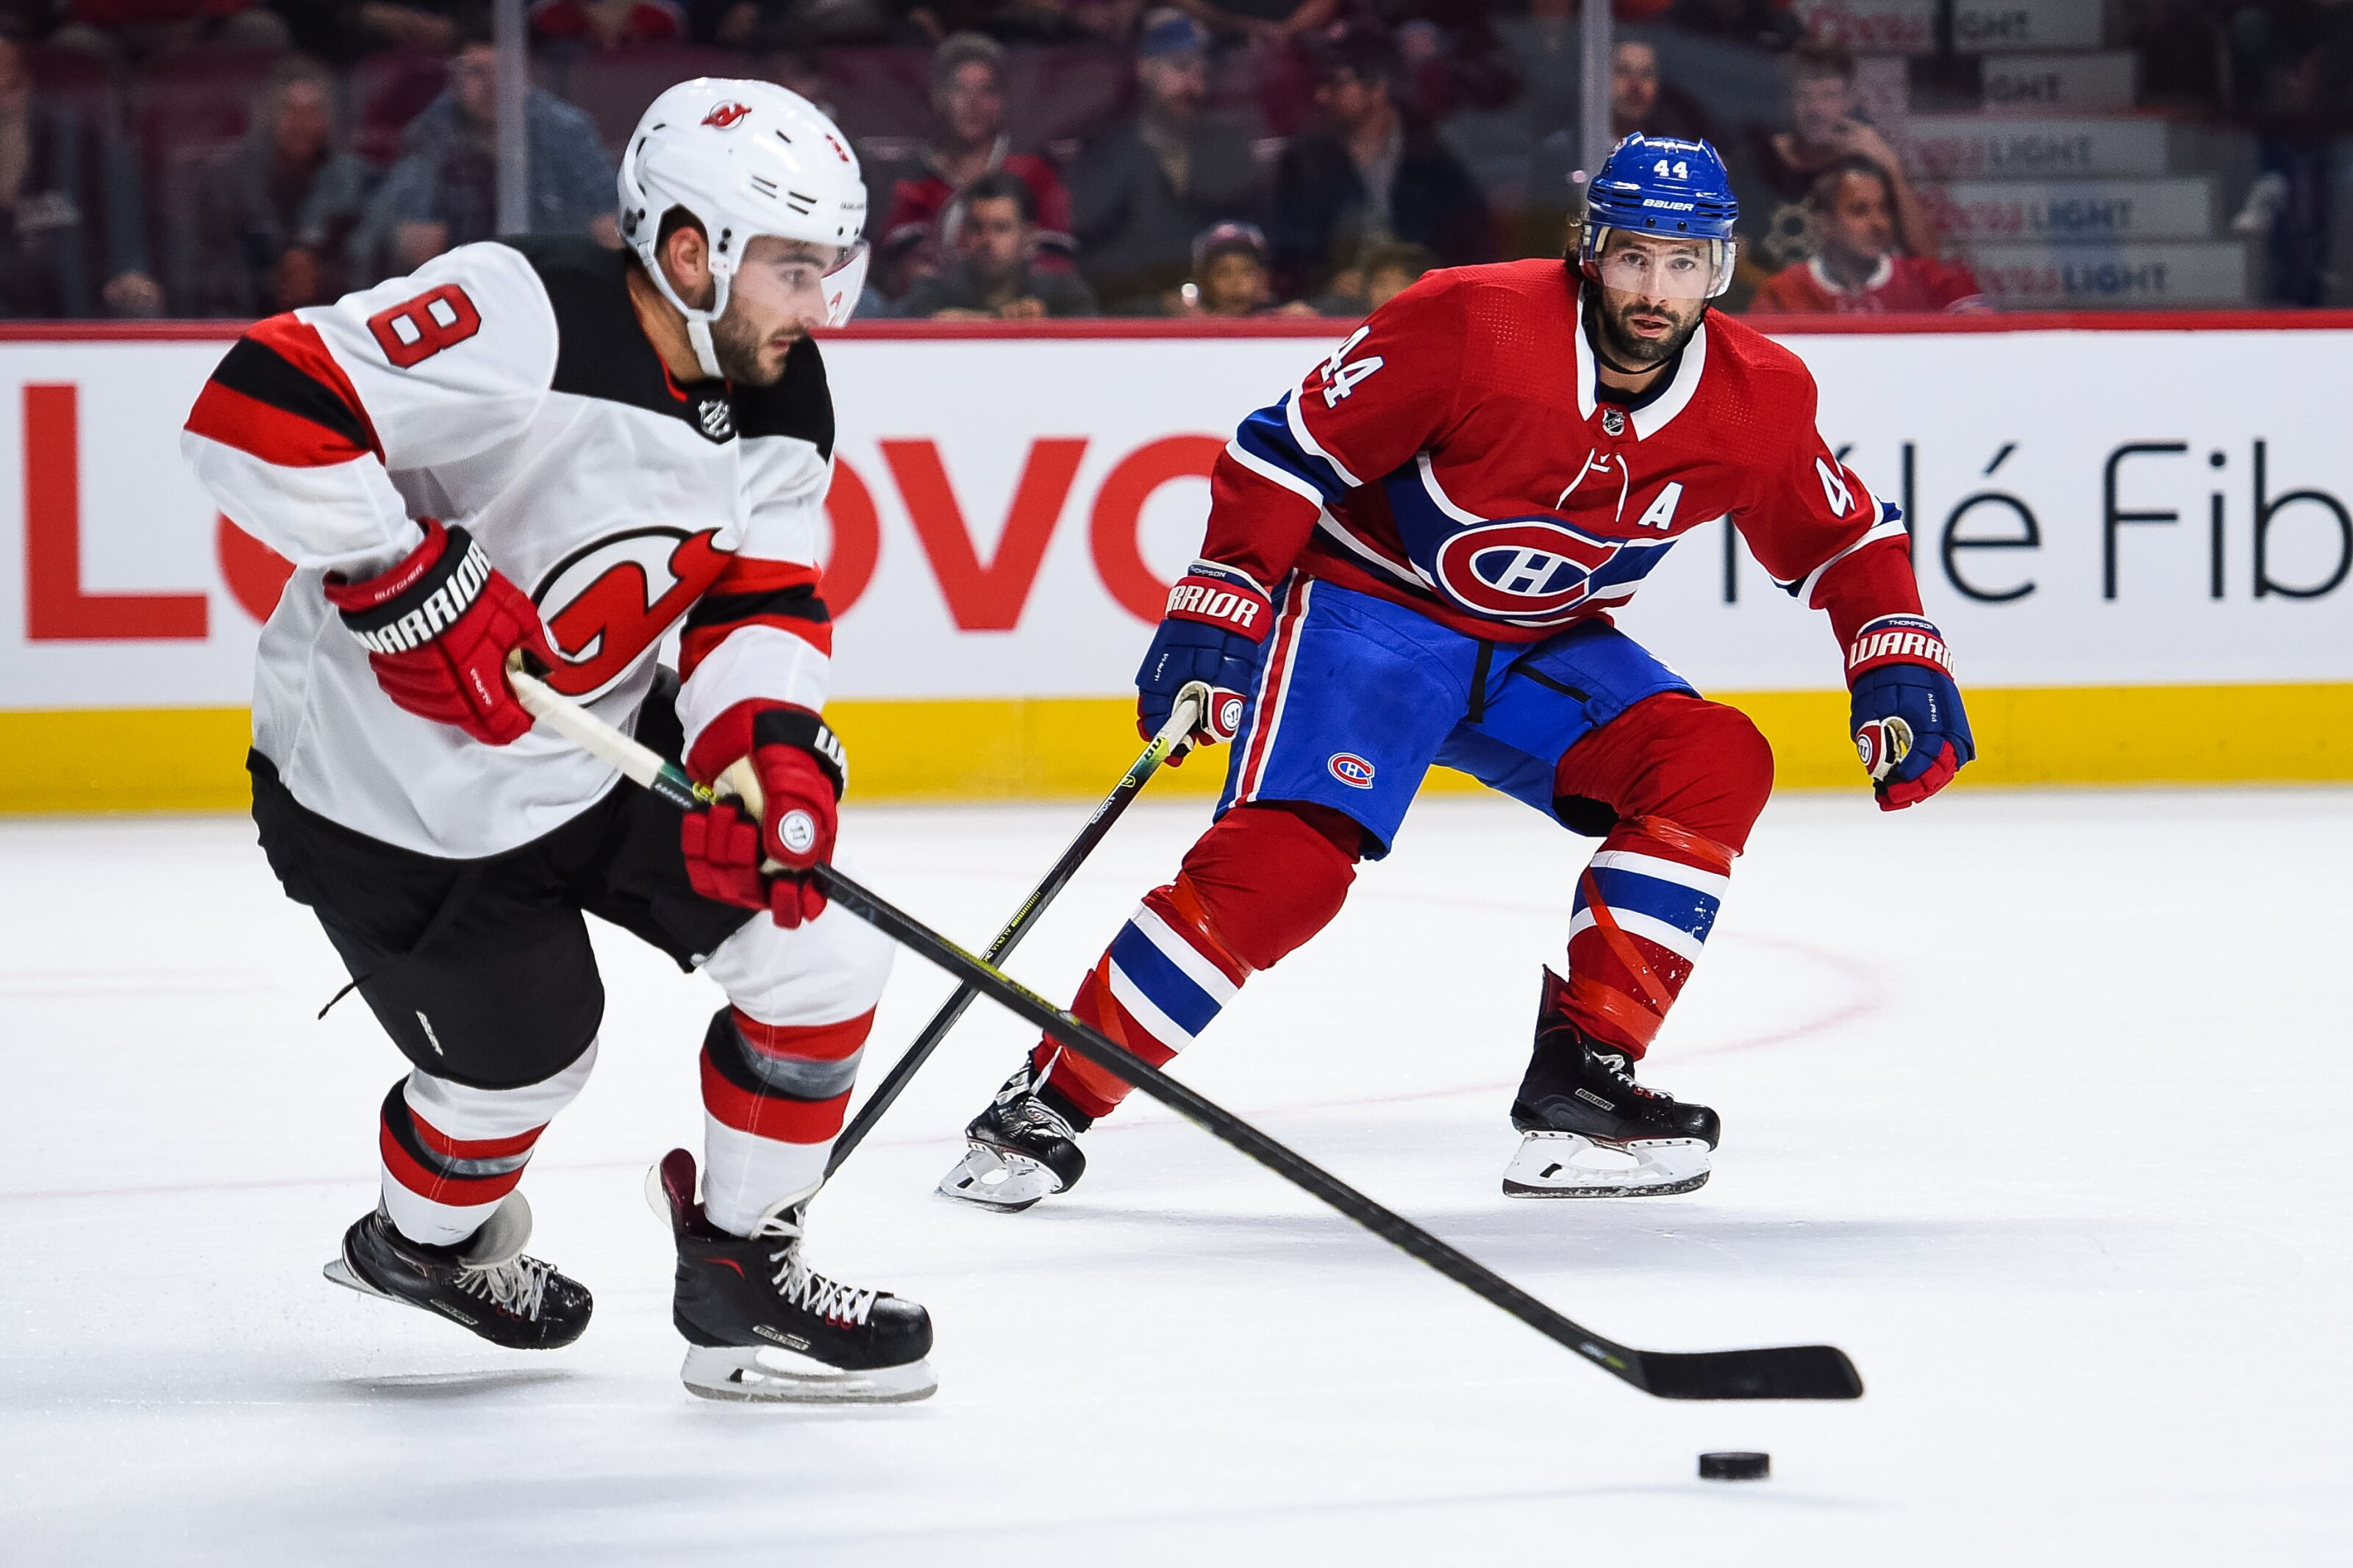 New Jersey Devils: Will Butcher Is Quietly Dominating The Preseason